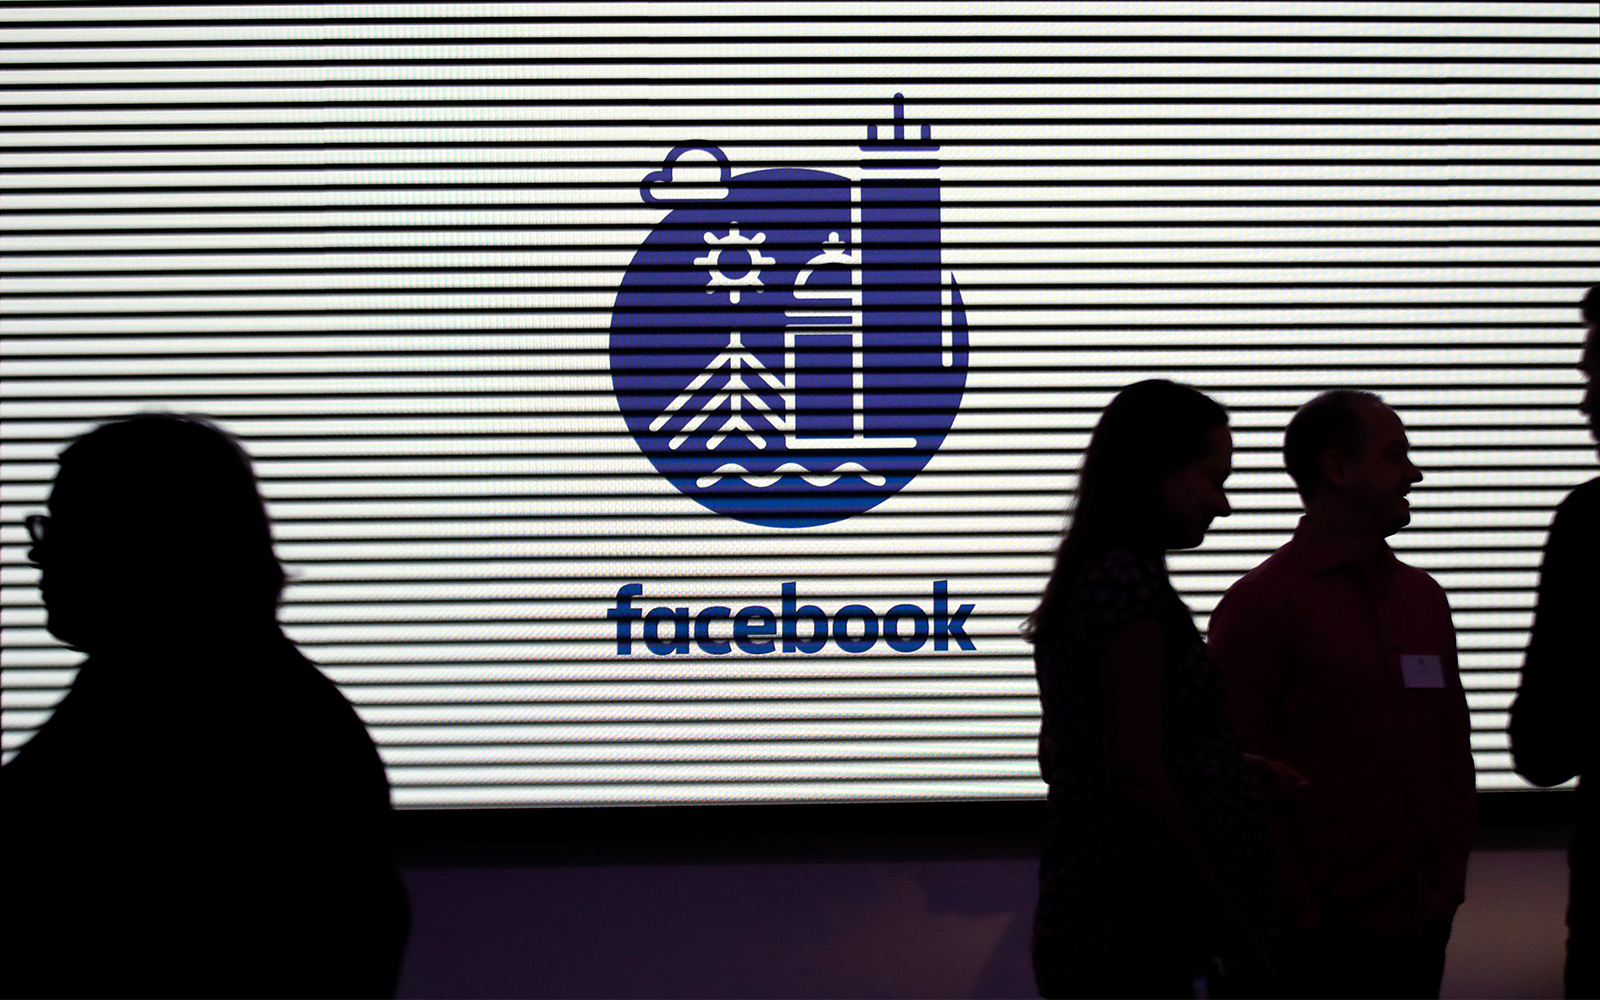 Most Facebook users unaware their information tracked, recorded by company